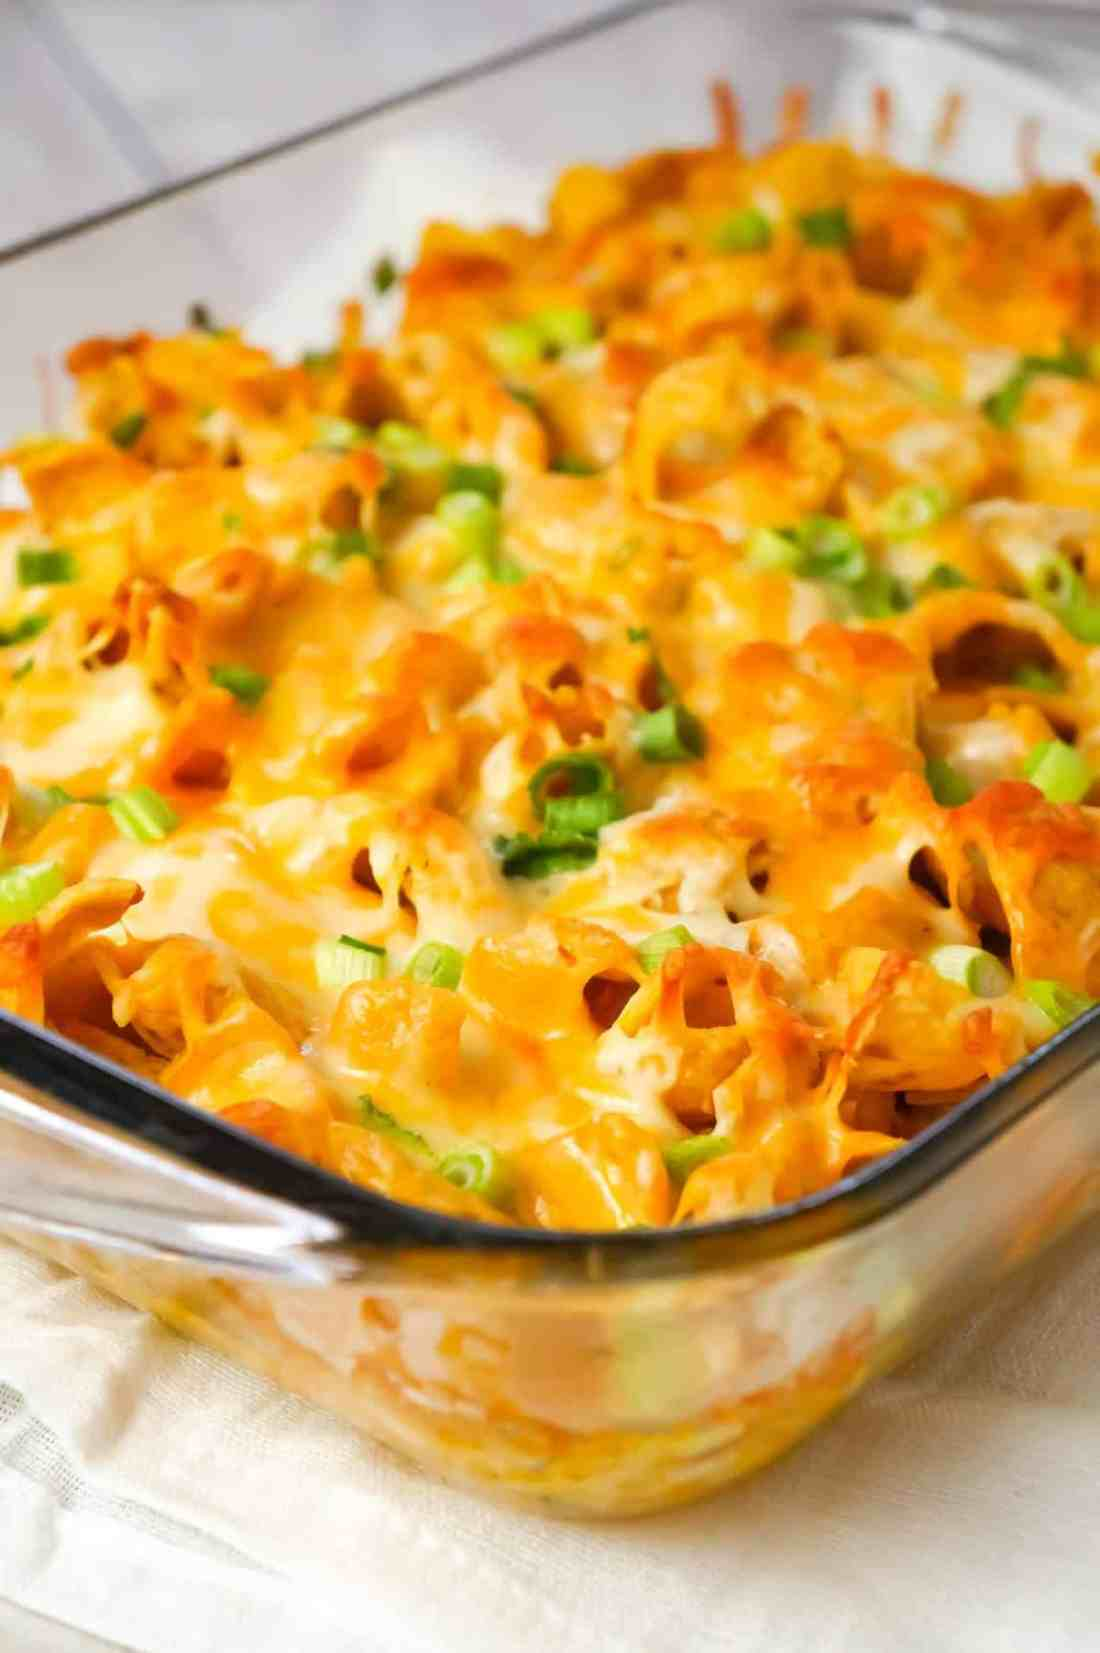 Buffalo Chicken Frito Pie is an easy casserole recipe using shredded rotisserie chicken and diced celery tossed in Buffalo sauce and ranch dressing, all topped with Fritos corn chips and cheese.